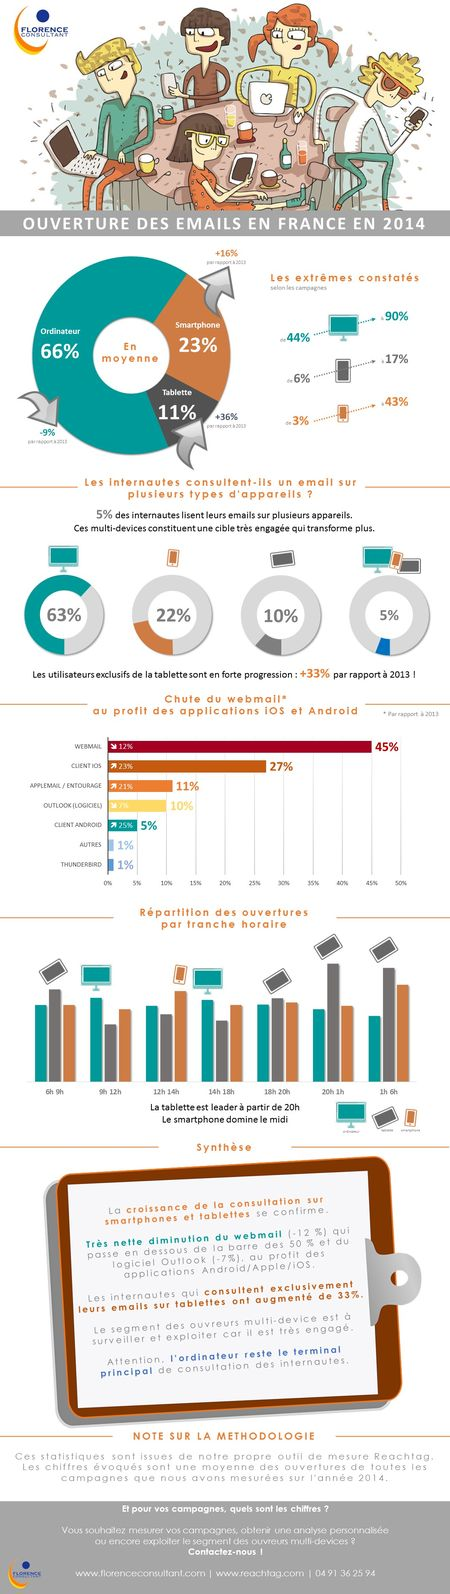 Infographie_ouverture-email_2015